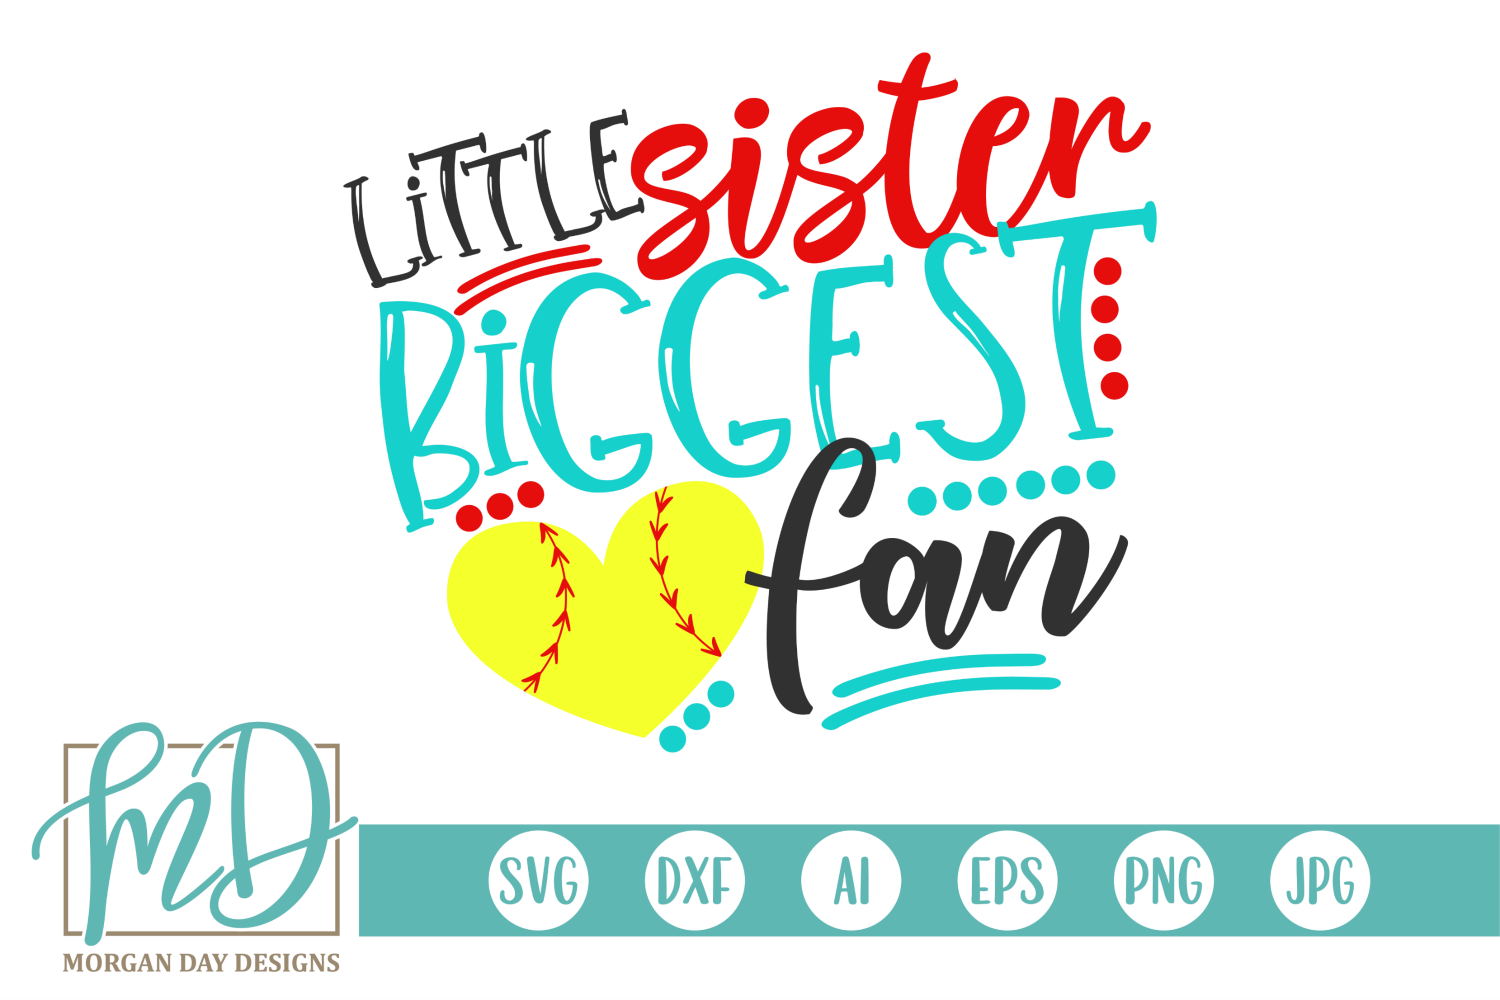 Download Free Little Sister Biggest Fan Softball Graphic By Morgan Day Designs for Cricut Explore, Silhouette and other cutting machines.